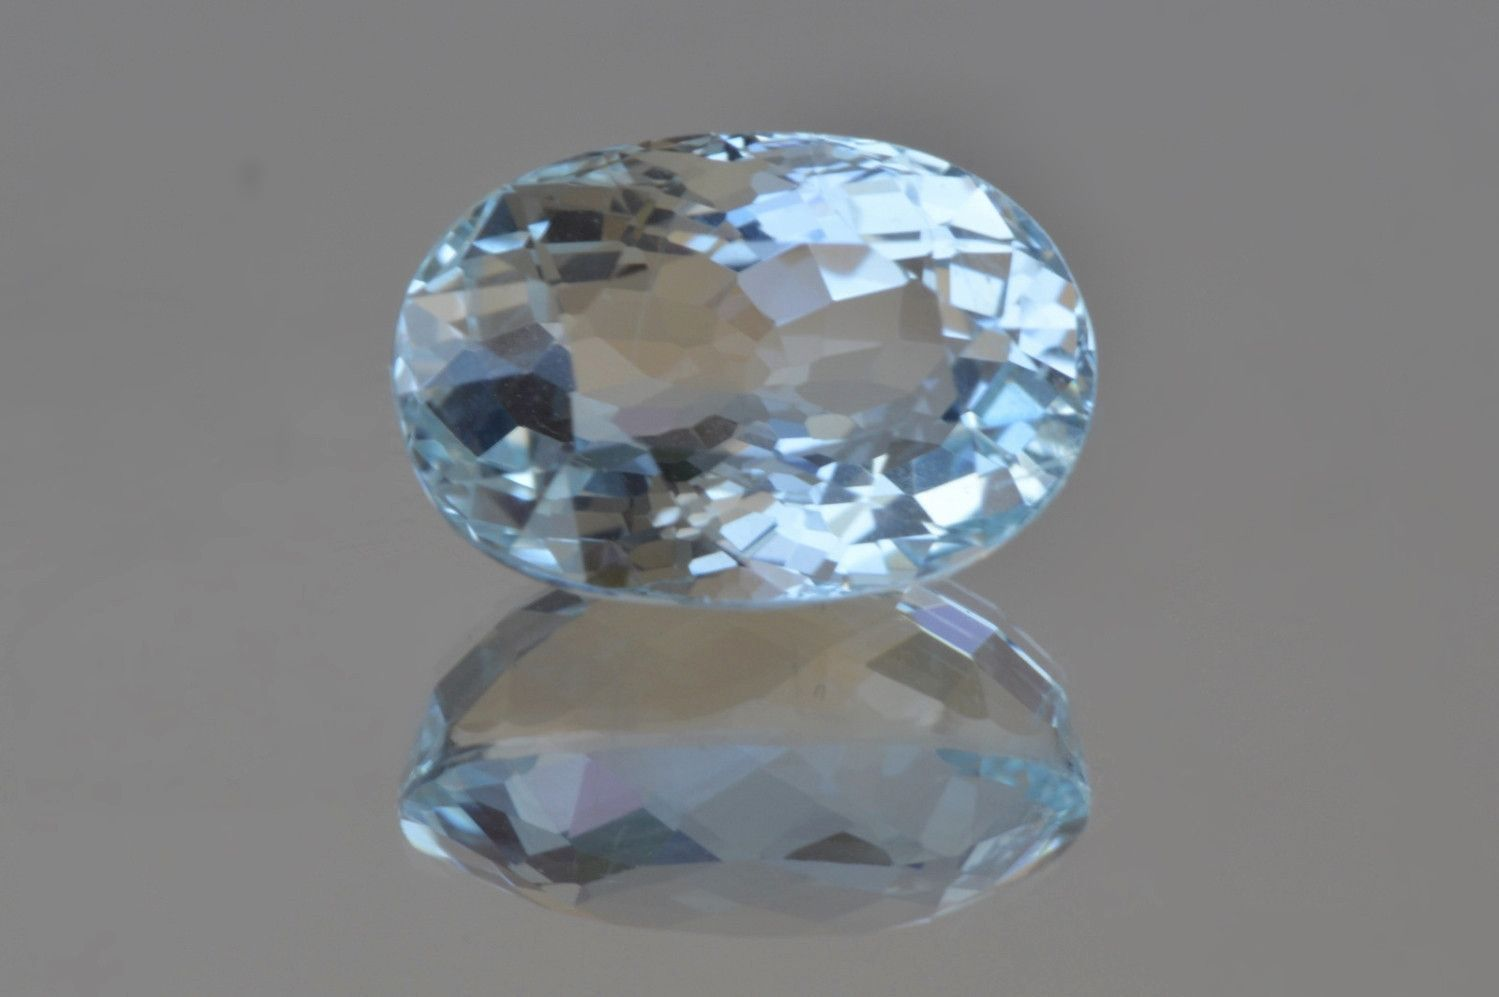 A light Blue Aquamarine. Welll cut, proportions and clarity (a minors inclusions). Oval cut, 2.98 ct. WEIGHT : 2.98 ct. SIZE : 10.48 * 7.21 * 6.23 mm. SHAPE : Oval COLOR : 21. (vslgB) very slightly gr